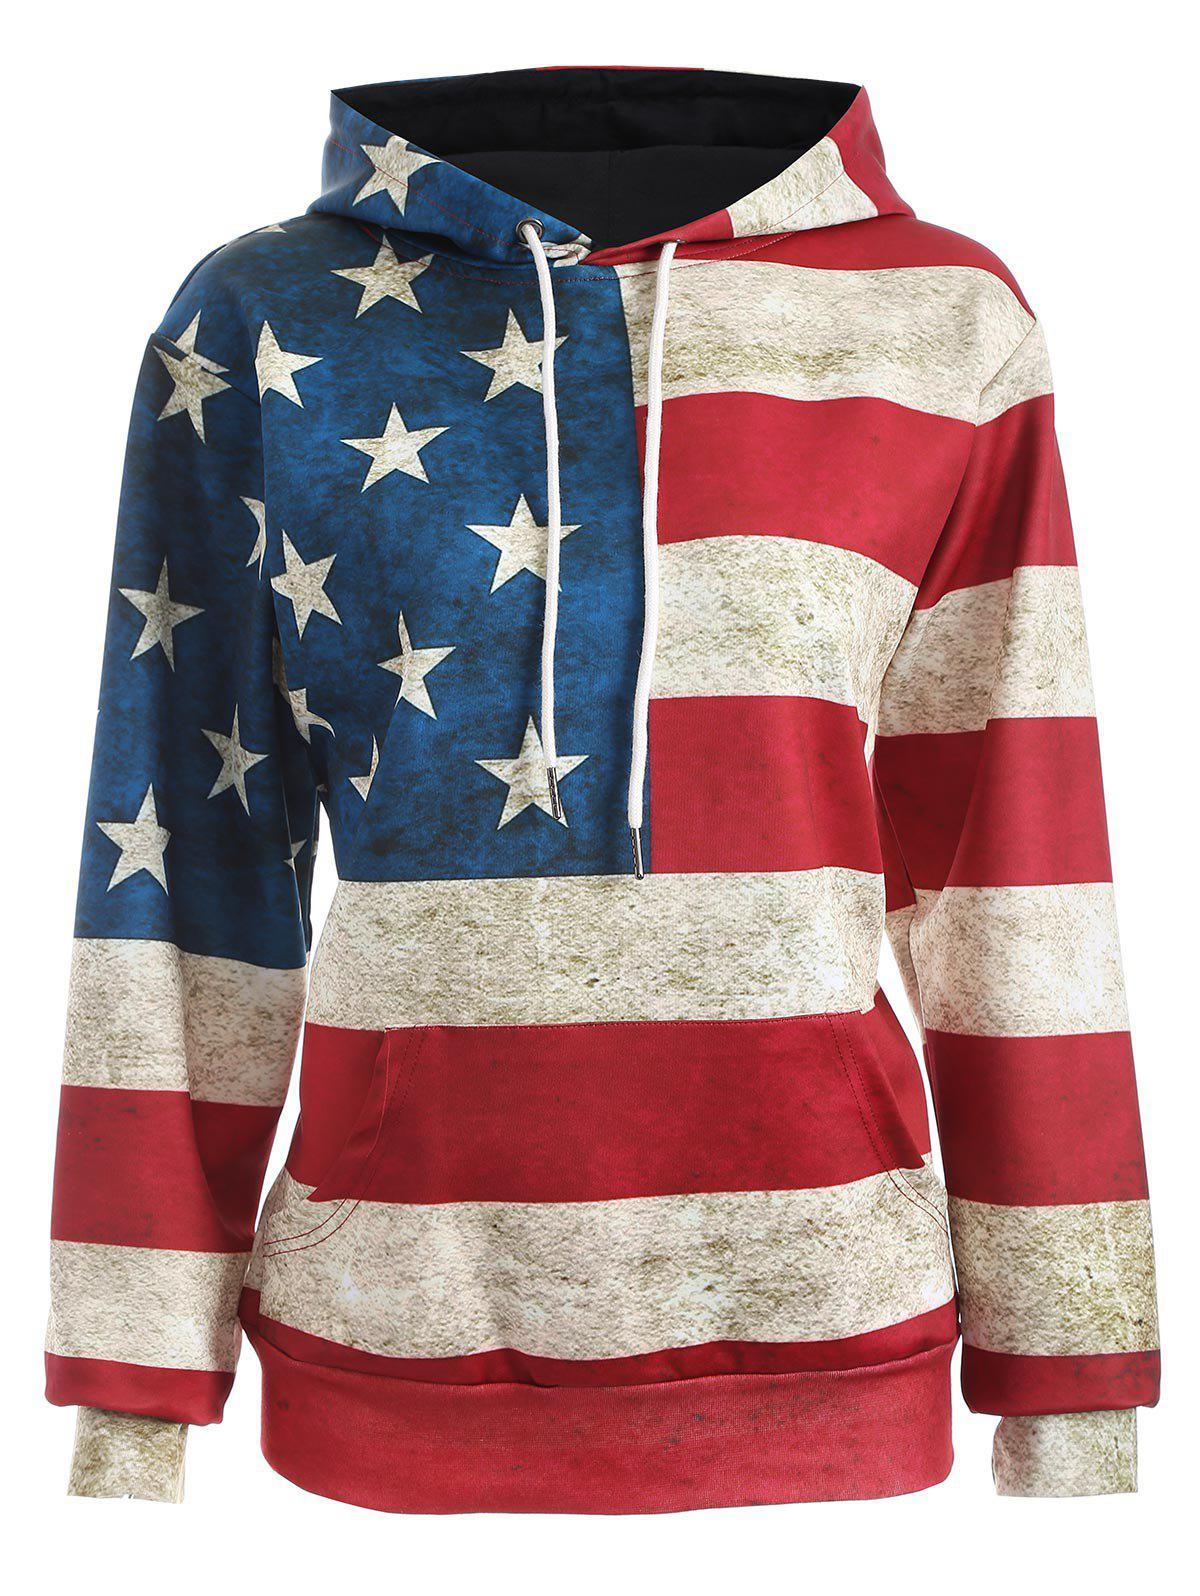 American Flag Print Pullover HoodieWOMEN<br><br>Size: XL; Color: BLUE AND RED; Material: Polyester; Shirt Length: Regular; Sleeve Length: Full; Style: Fashion; Pattern Style: Print; Season: Fall,Spring; Weight: 0.472kg; Package Contents: 1 x Hoodie;